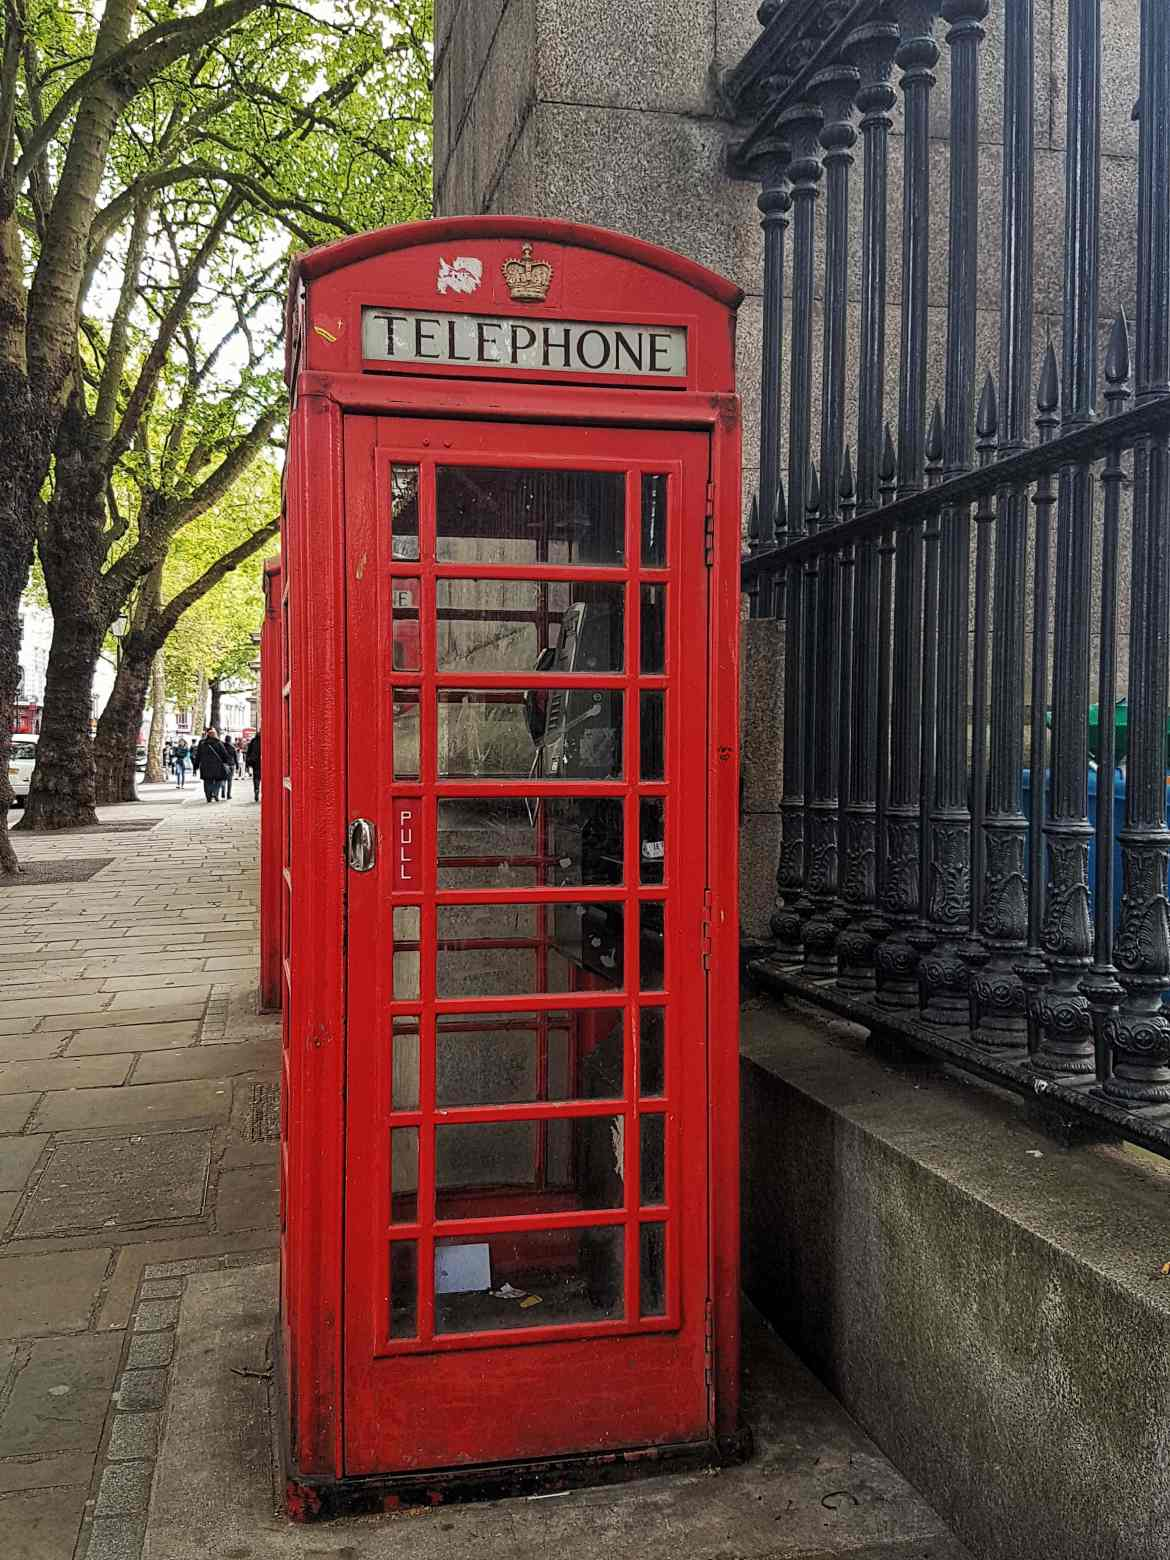 fromthecornertable, travelblog, travelblogger, england, englandcities, englandtowns, englandvillages, english, unitedkingdom, travelengland, travelUK, things-to-see, must-see-england, must-visit-england, london, londonphonebooth, phonebooth